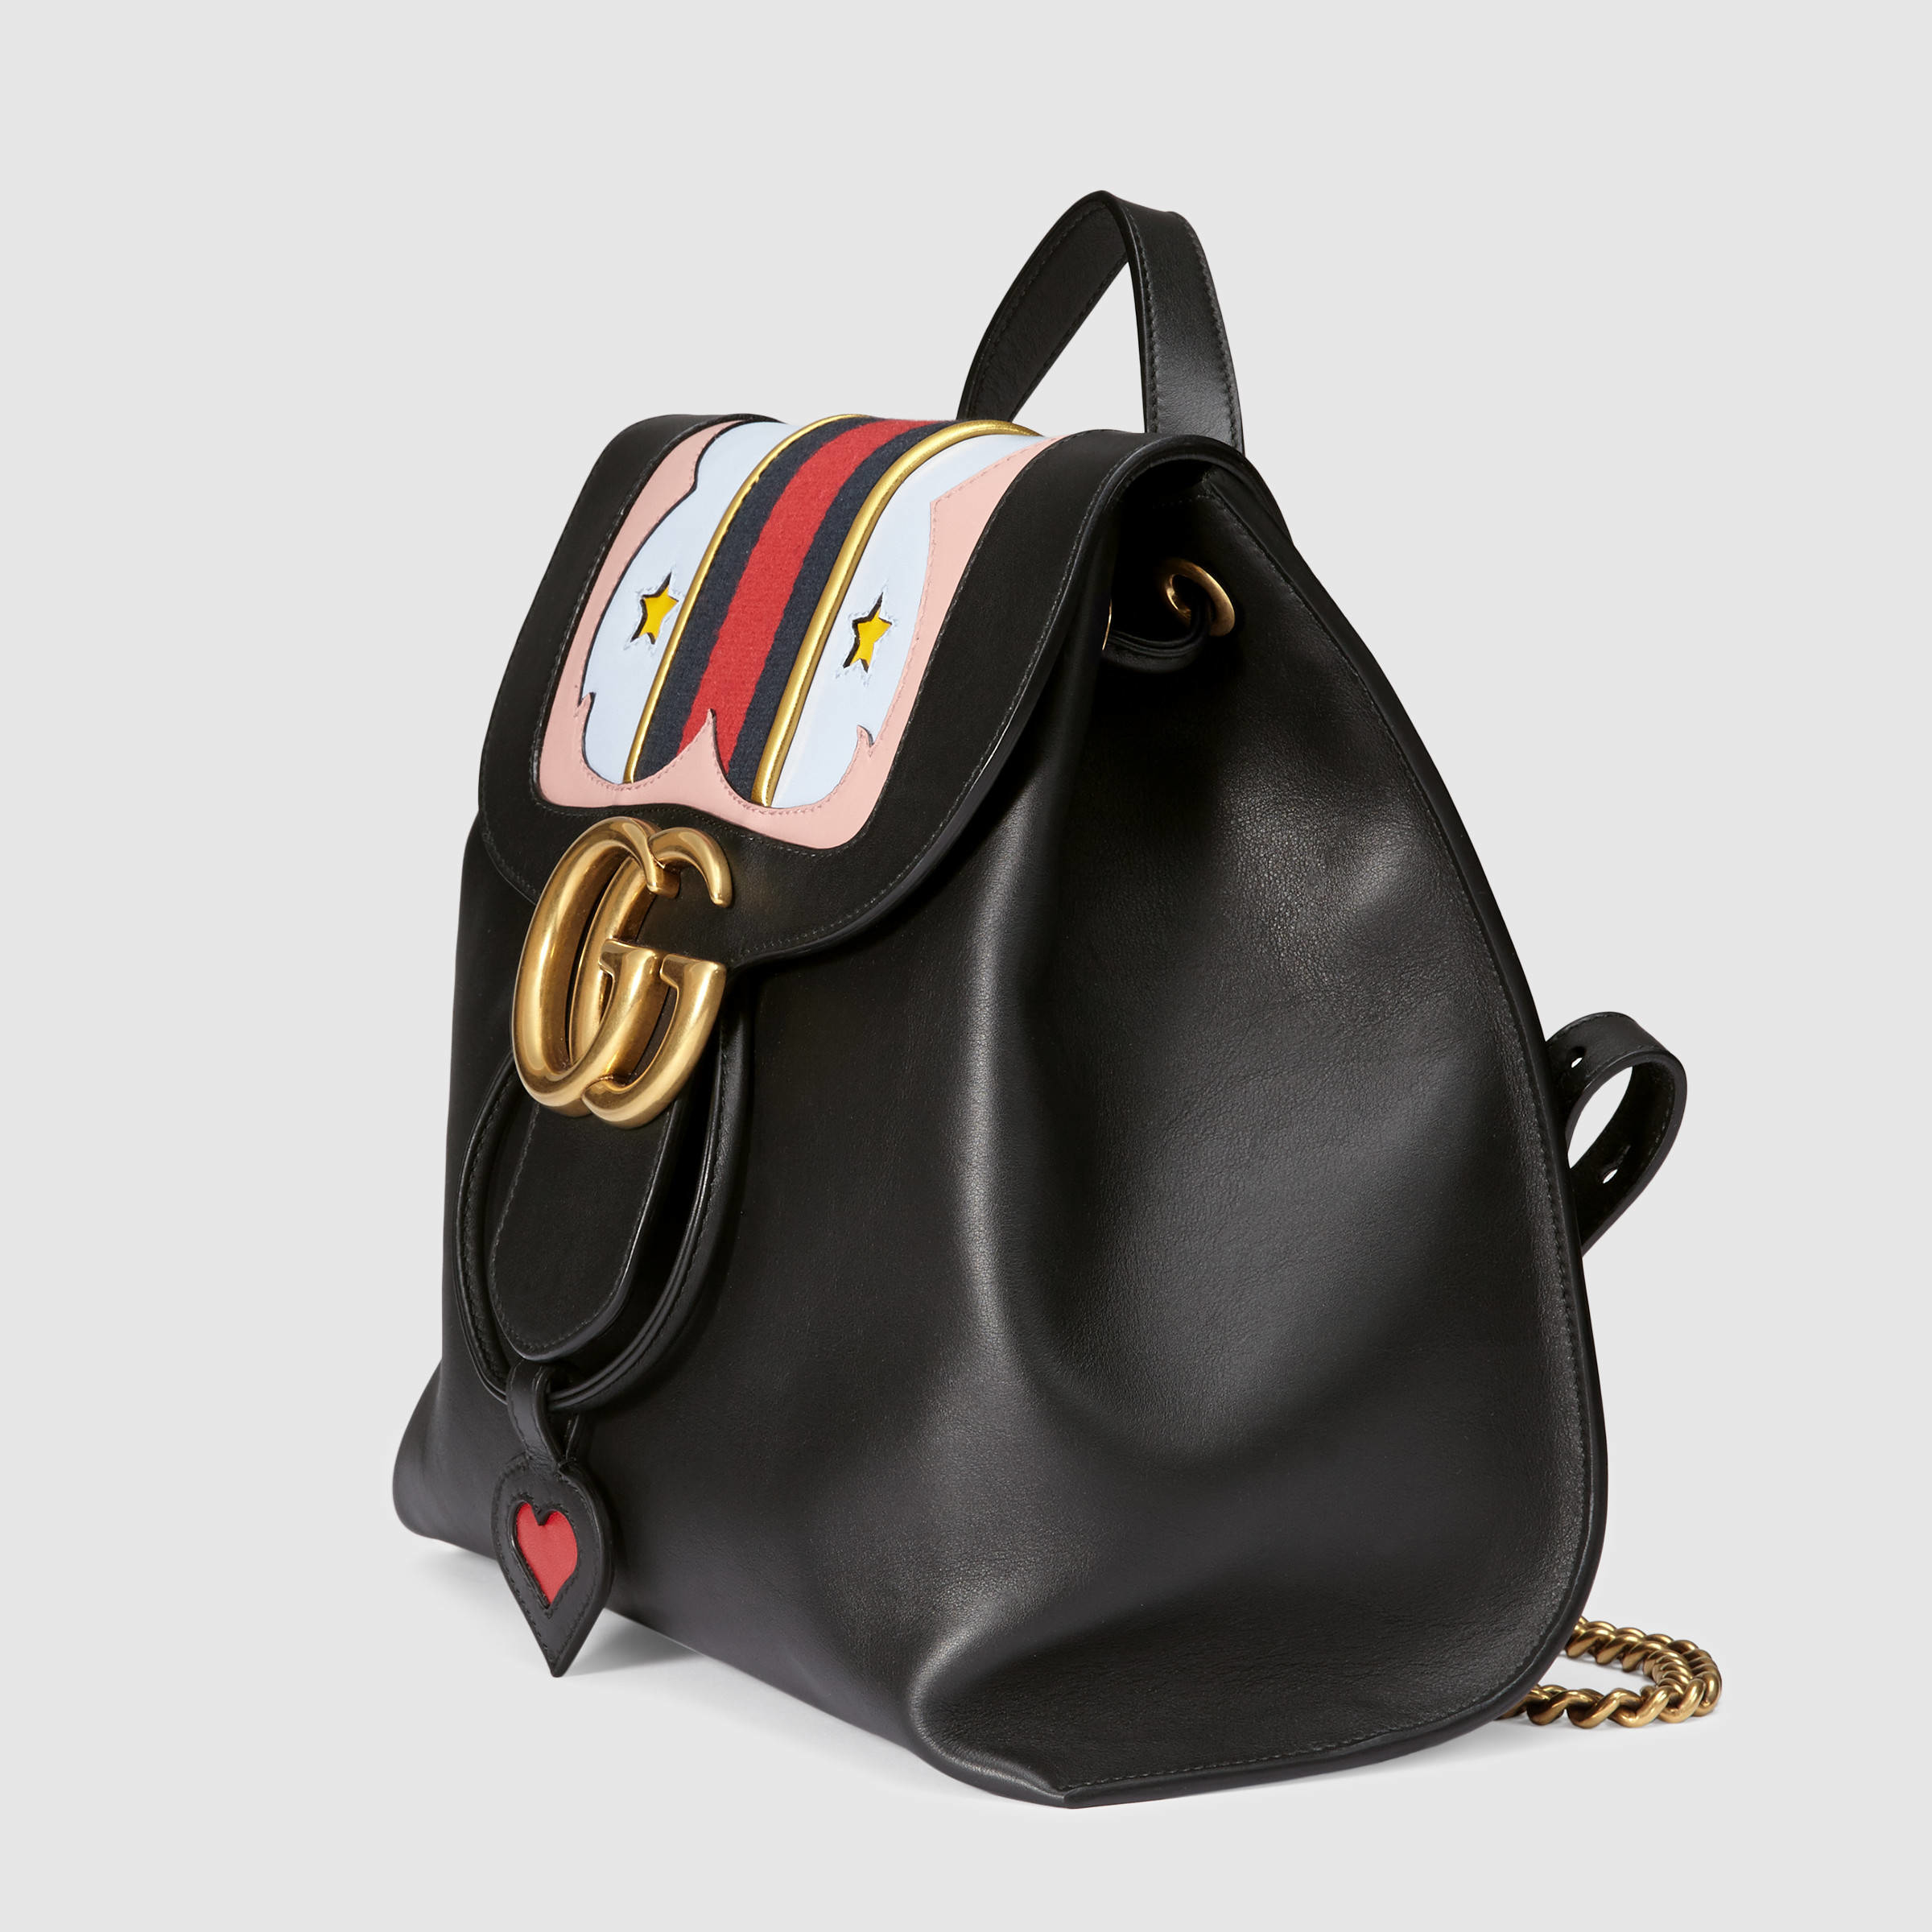 e520757e8c94 Gucci GG Marmont Leather Backpack in Black - Lyst